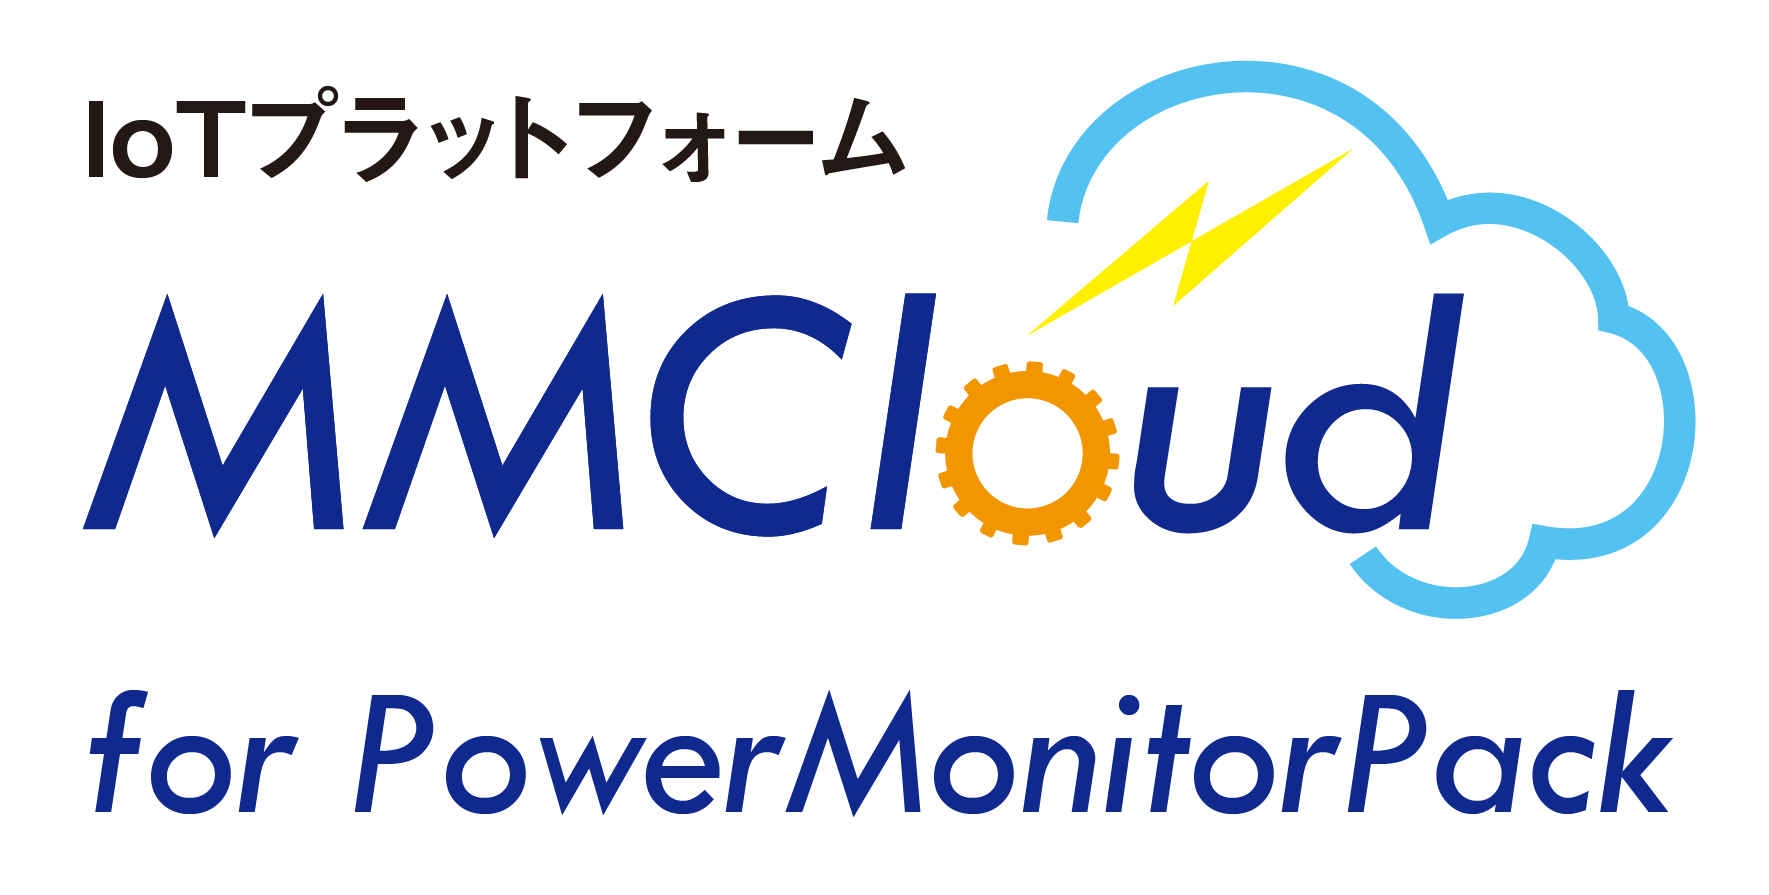 MMCloud for PowerMonitorPack